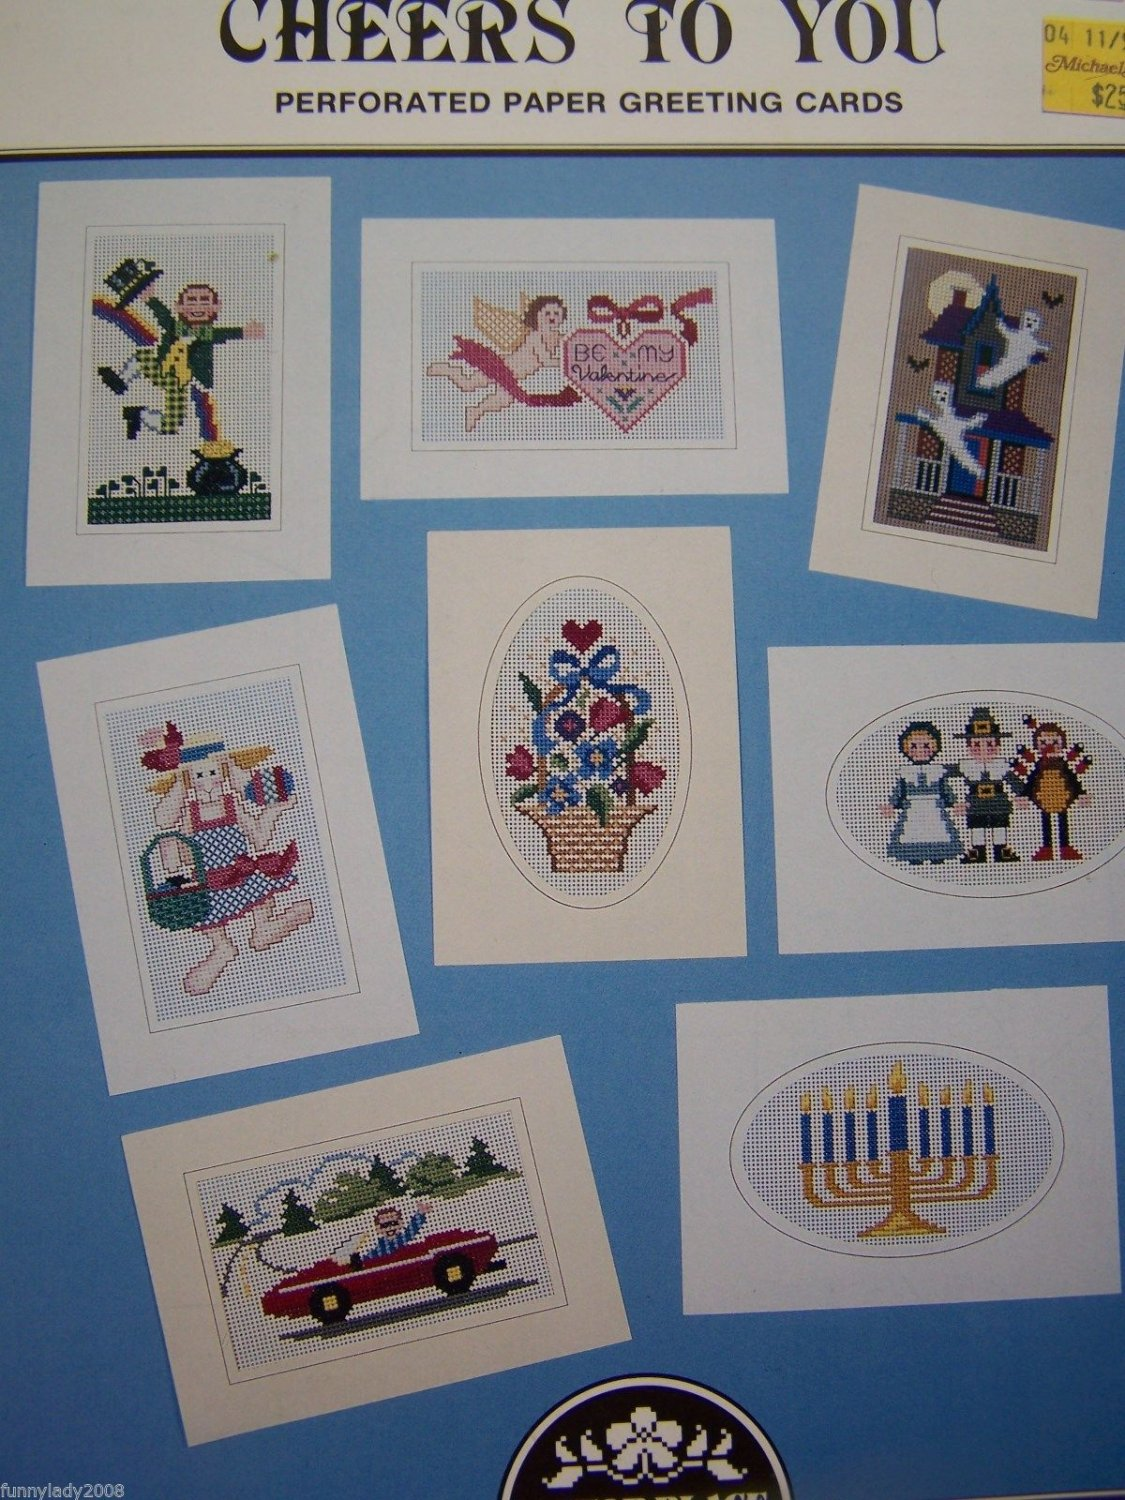 8 Cross Stitch Embroidery Patterns Perforated Paper Greeting Cards Book 47 Hanukkah